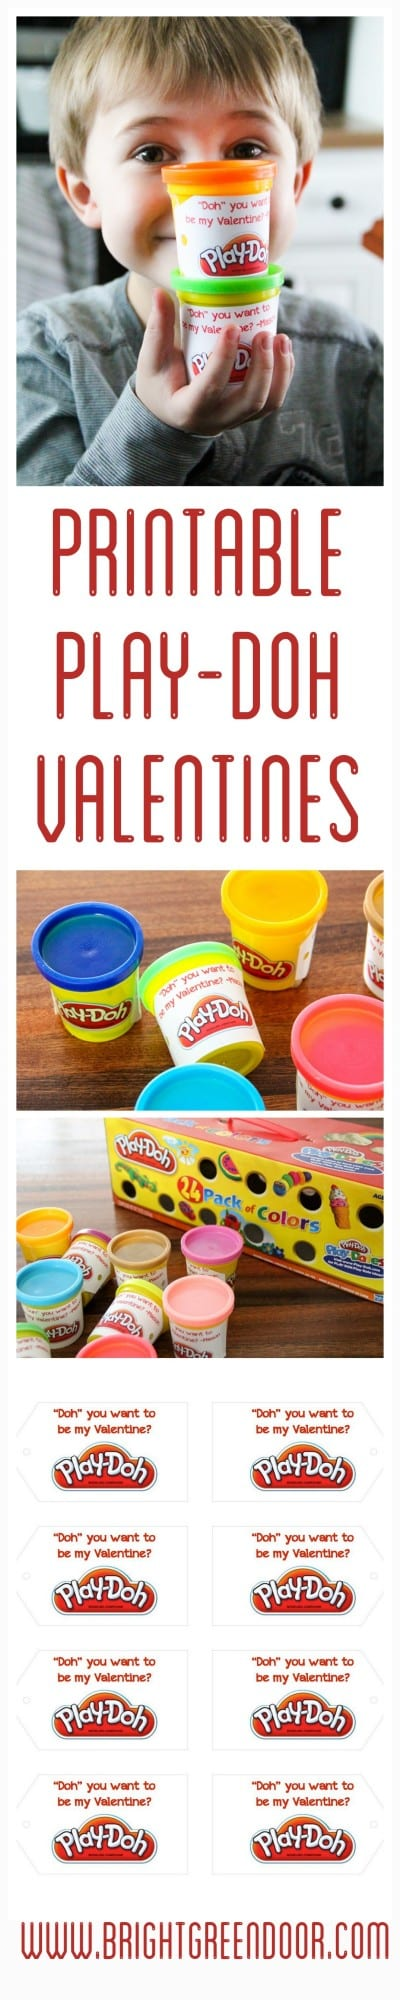 Printable Play-Doh Valentines